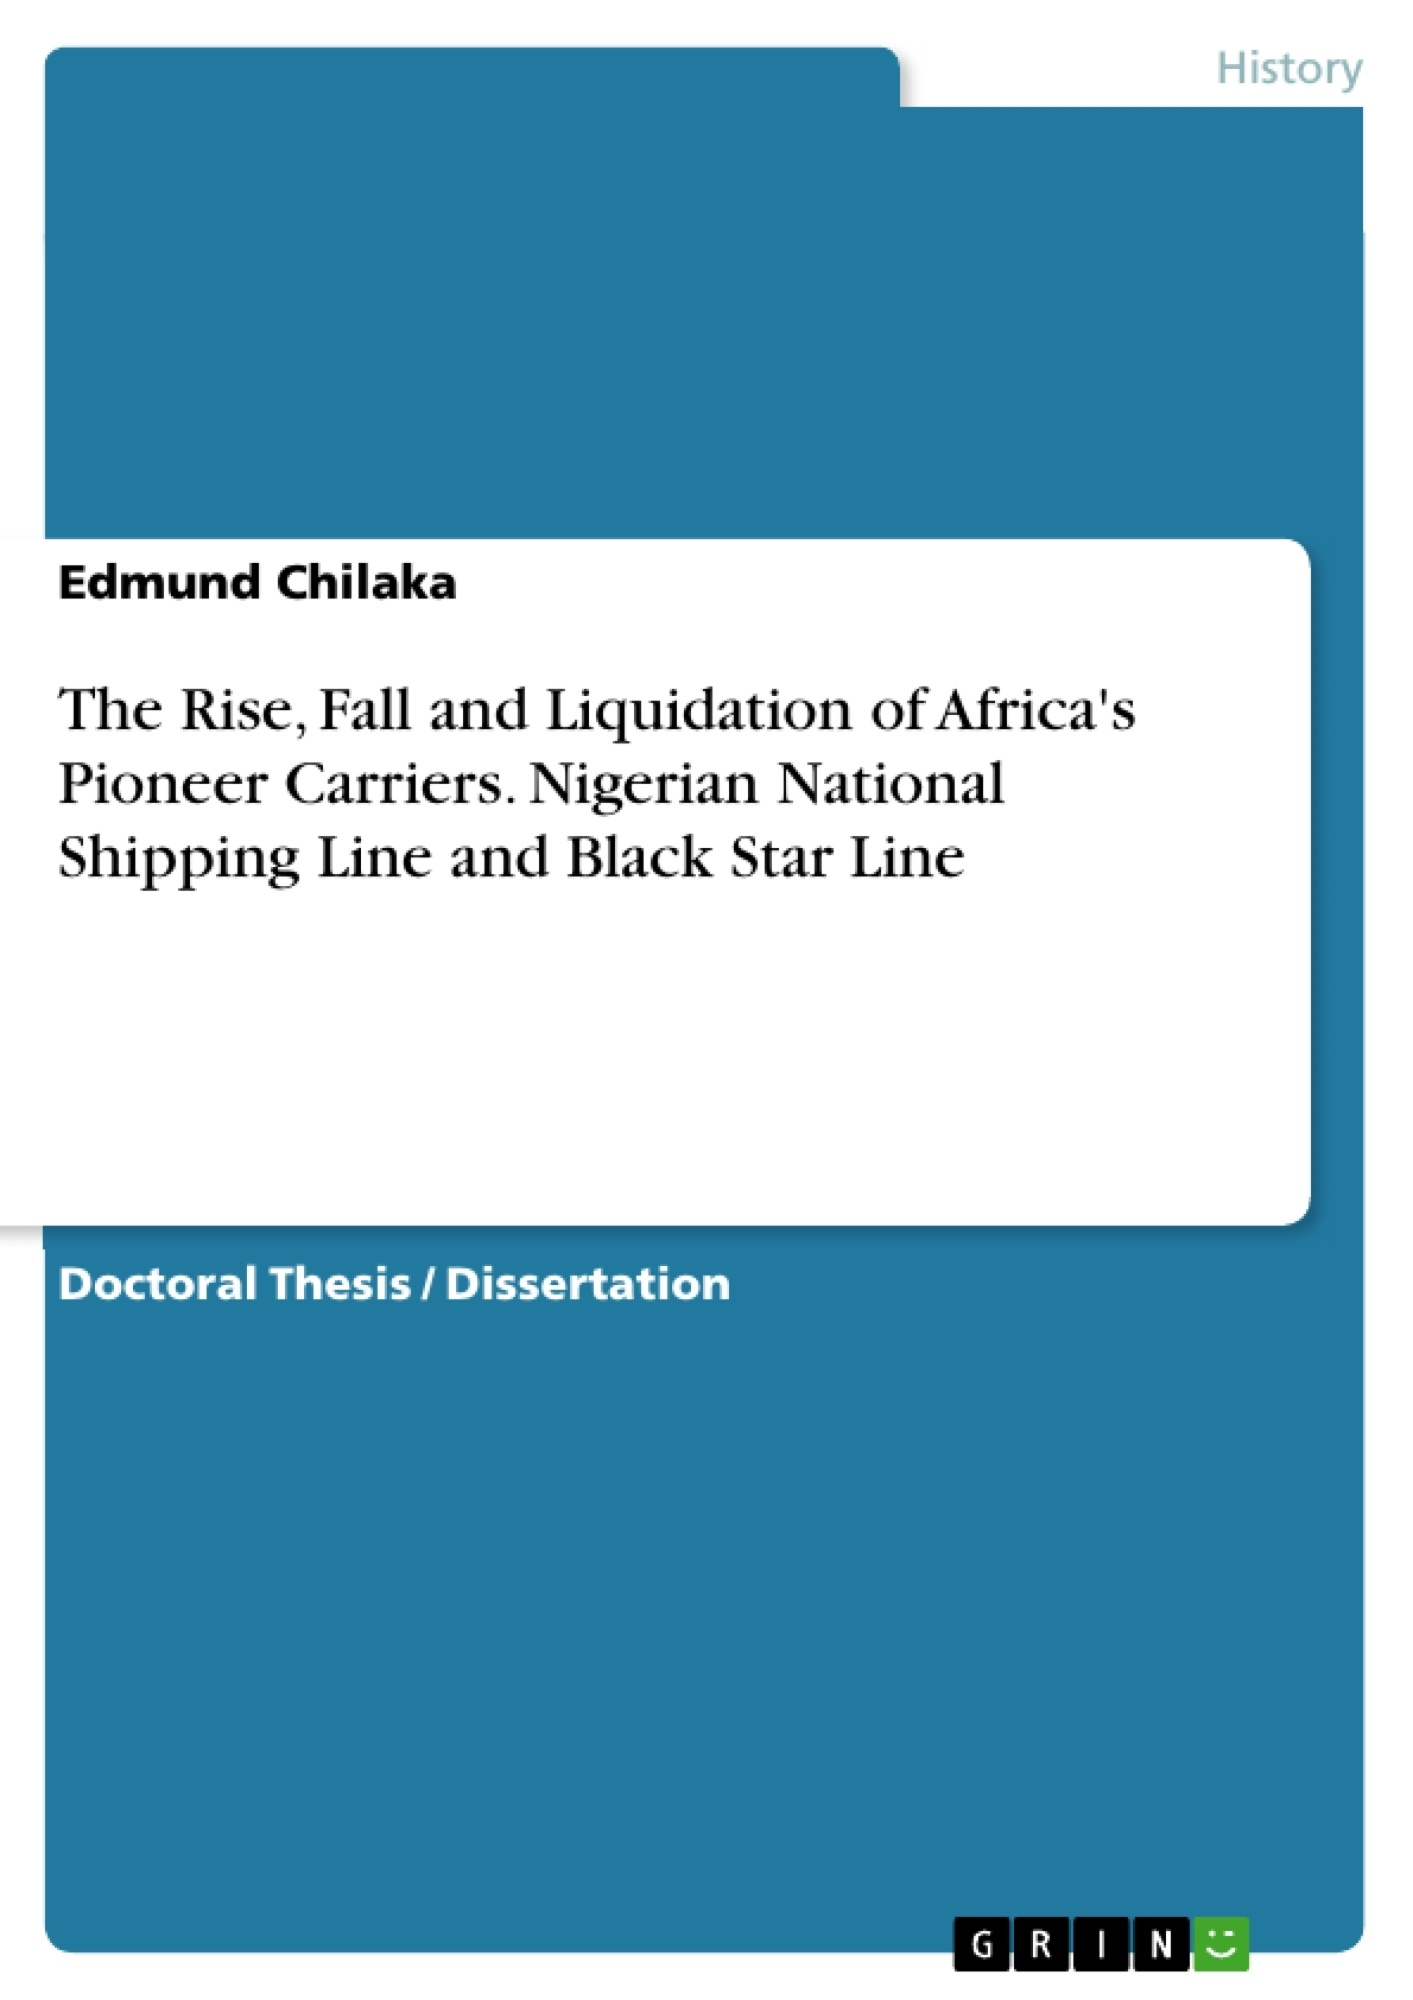 Title: The Rise, Fall and Liquidation of Africa's Pioneer Carriers. Nigerian National Shipping Line and Black Star Line